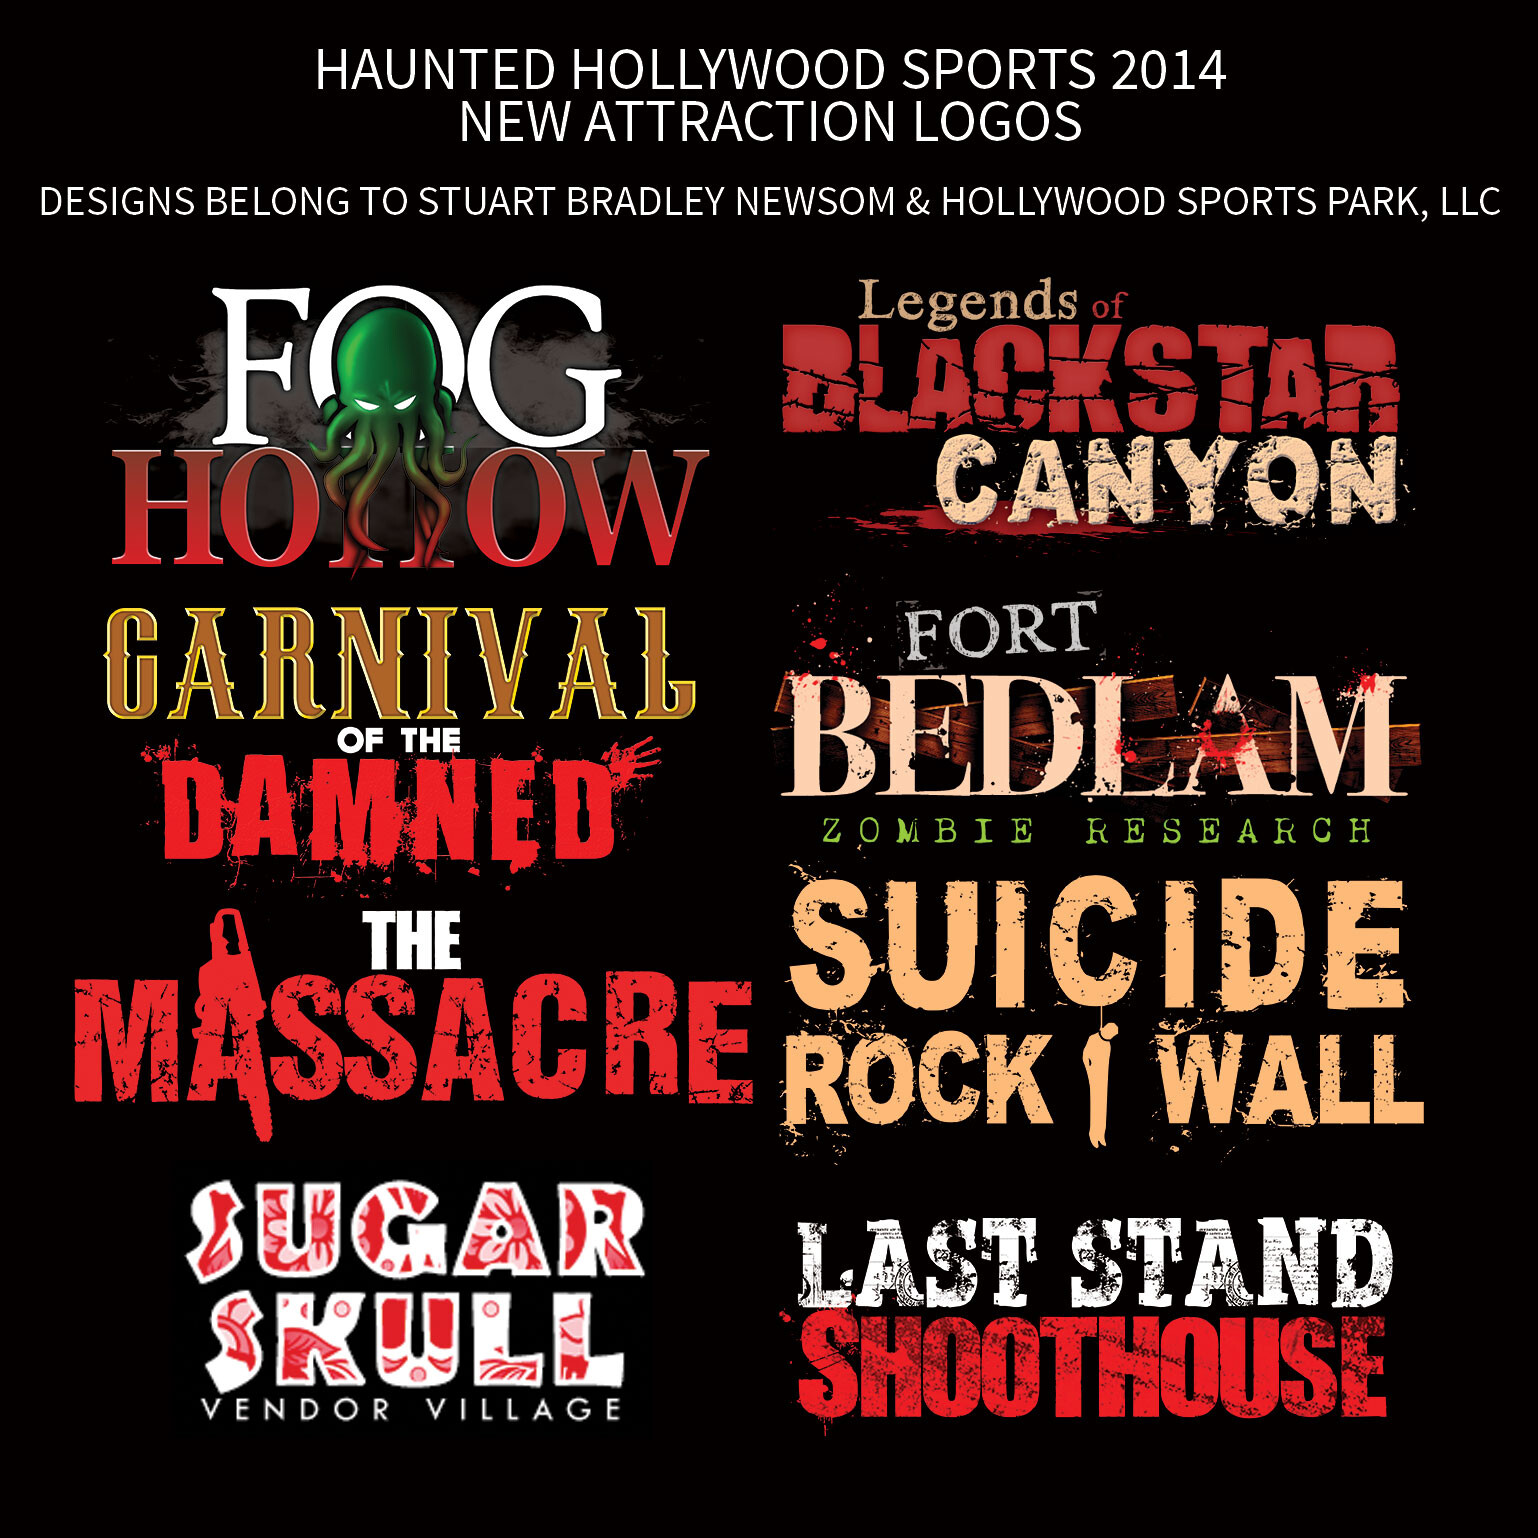 2014 Haunted Hollywood Sports Attraction Logos